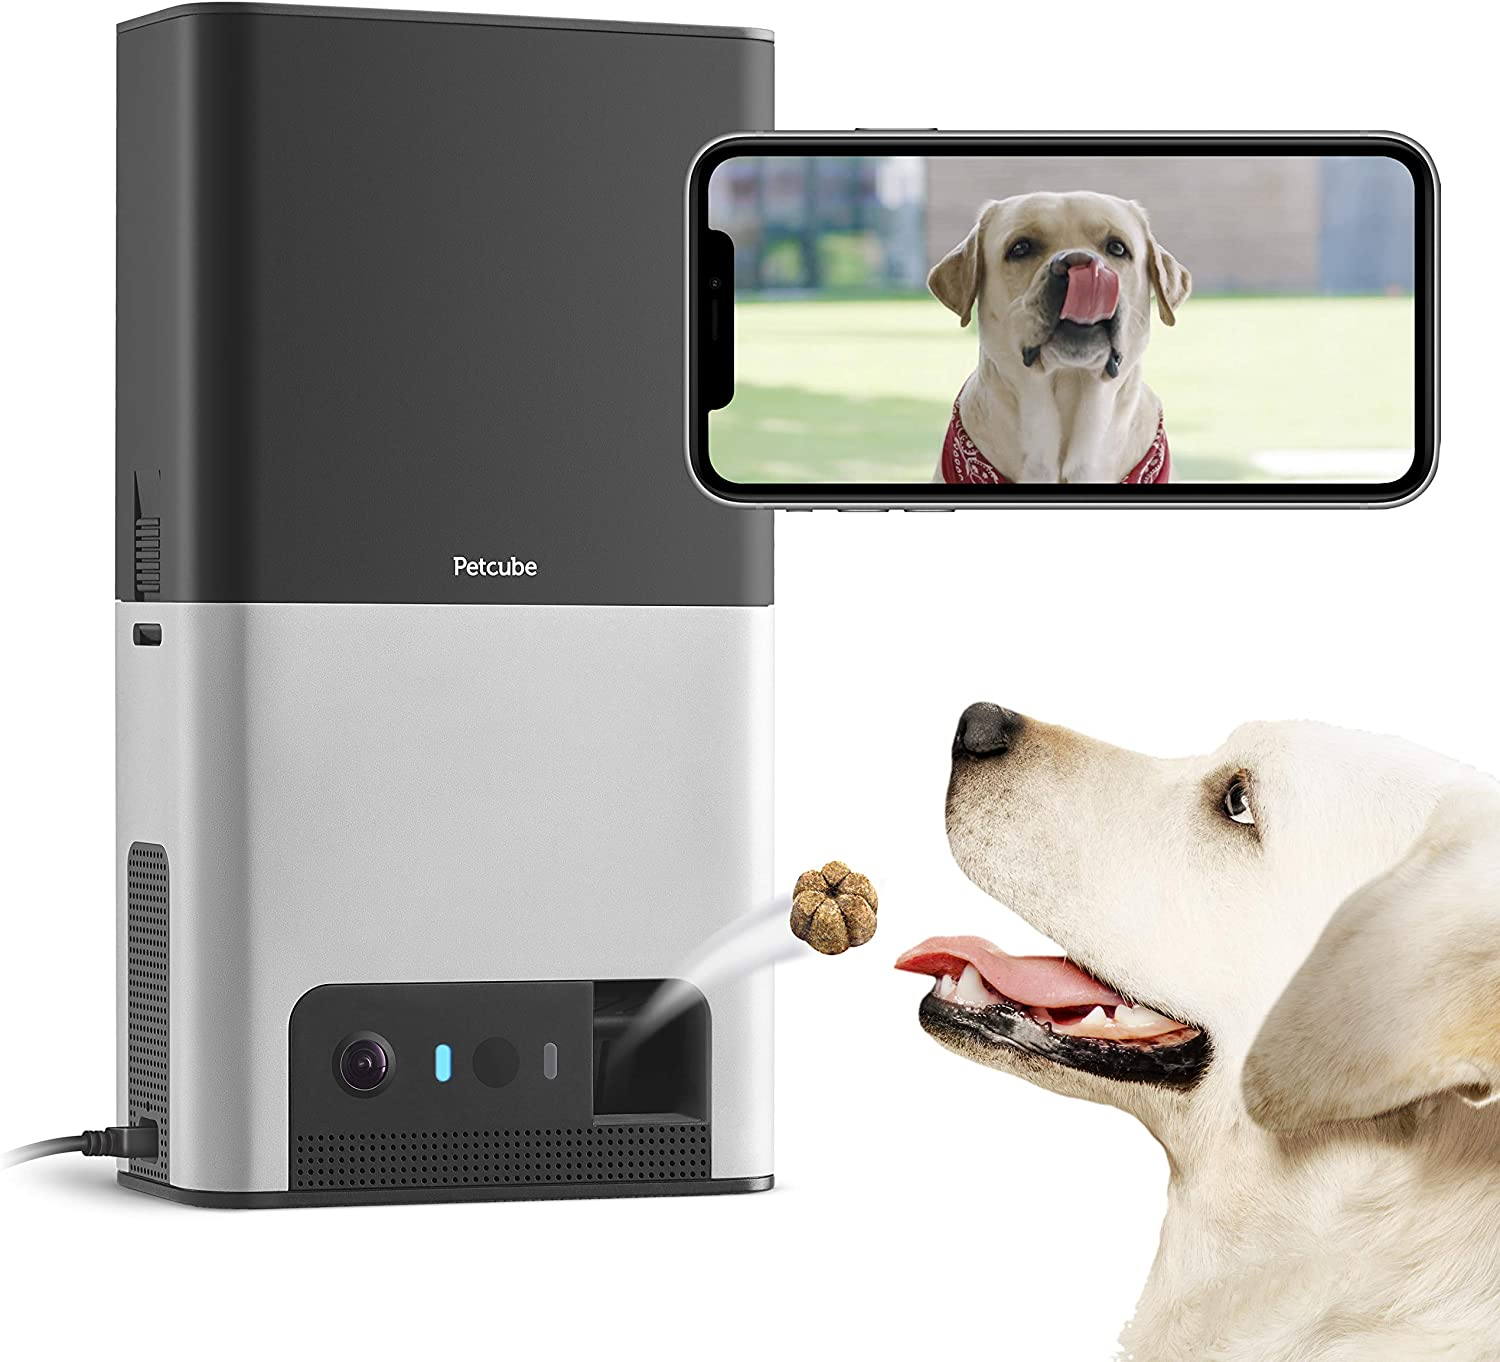 Petcube Bites 2 Wi-Fi Pet Camera with Treat Dispenser Contest Giveaway Giveaway Image